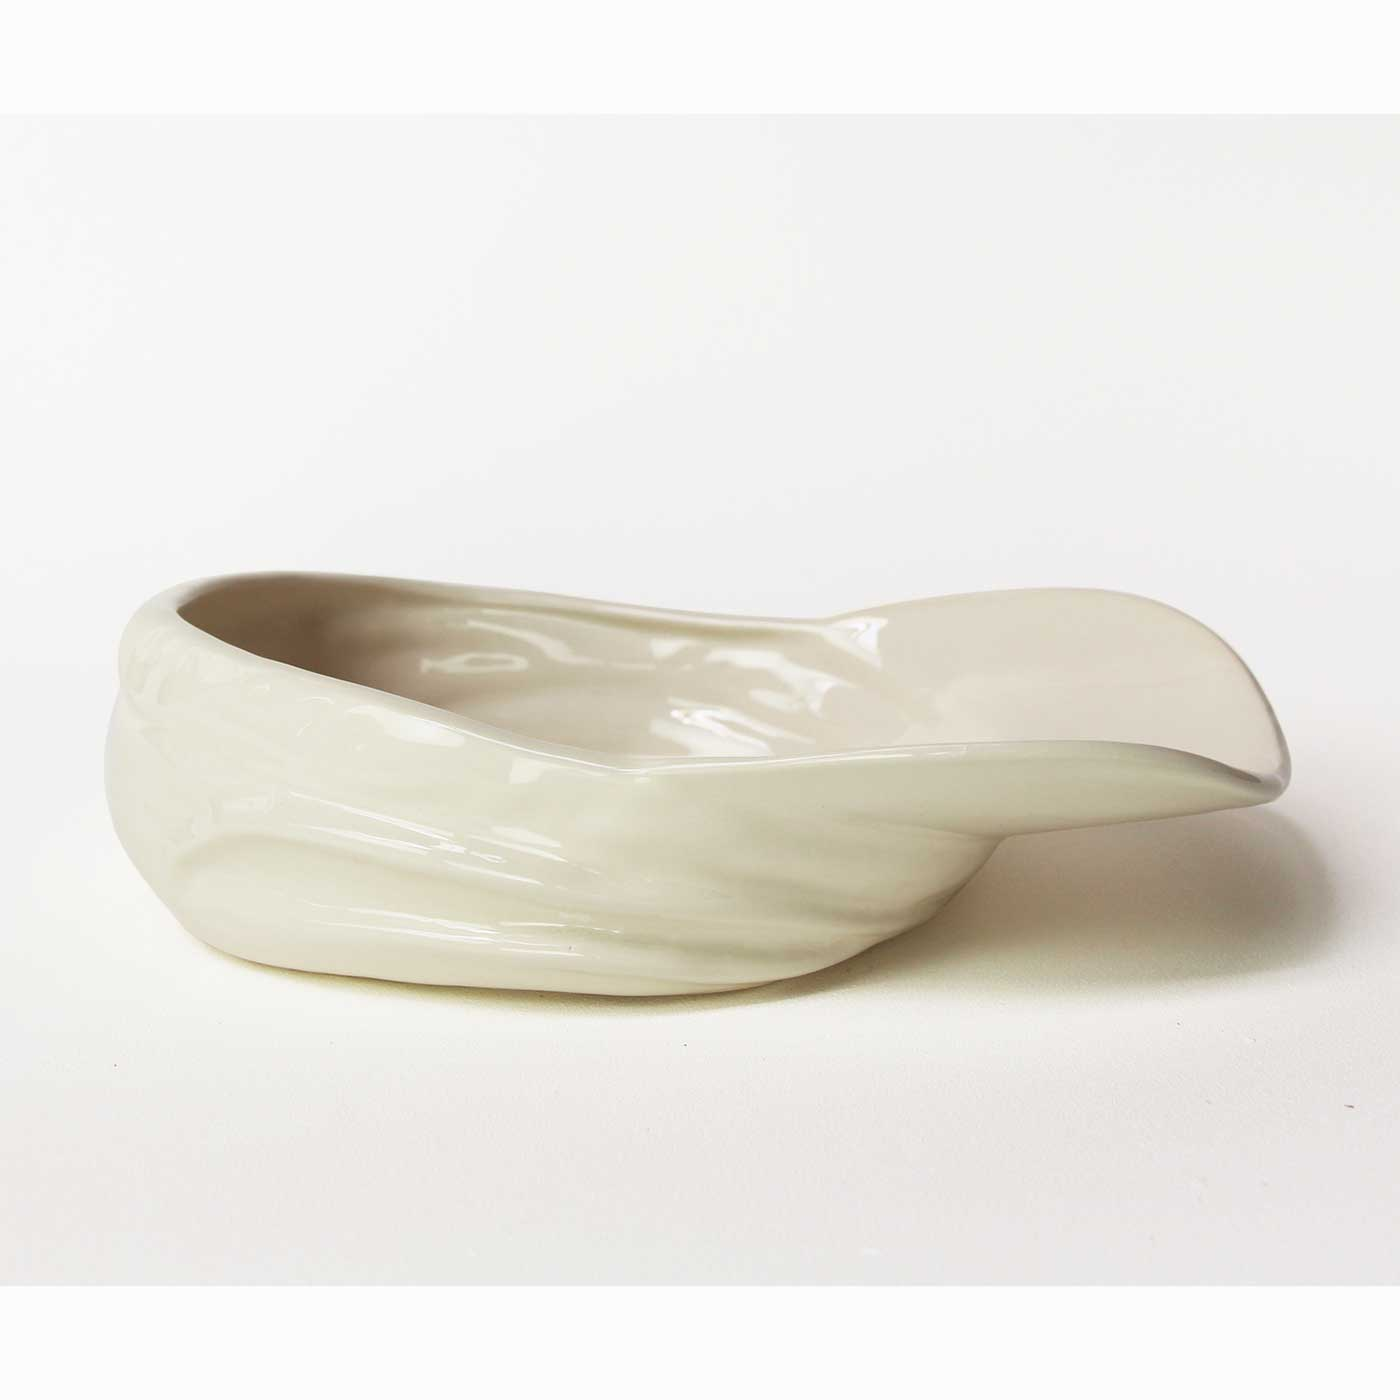 Stolen Form Buskers Hat Bowl in White Ceramic Earthenware